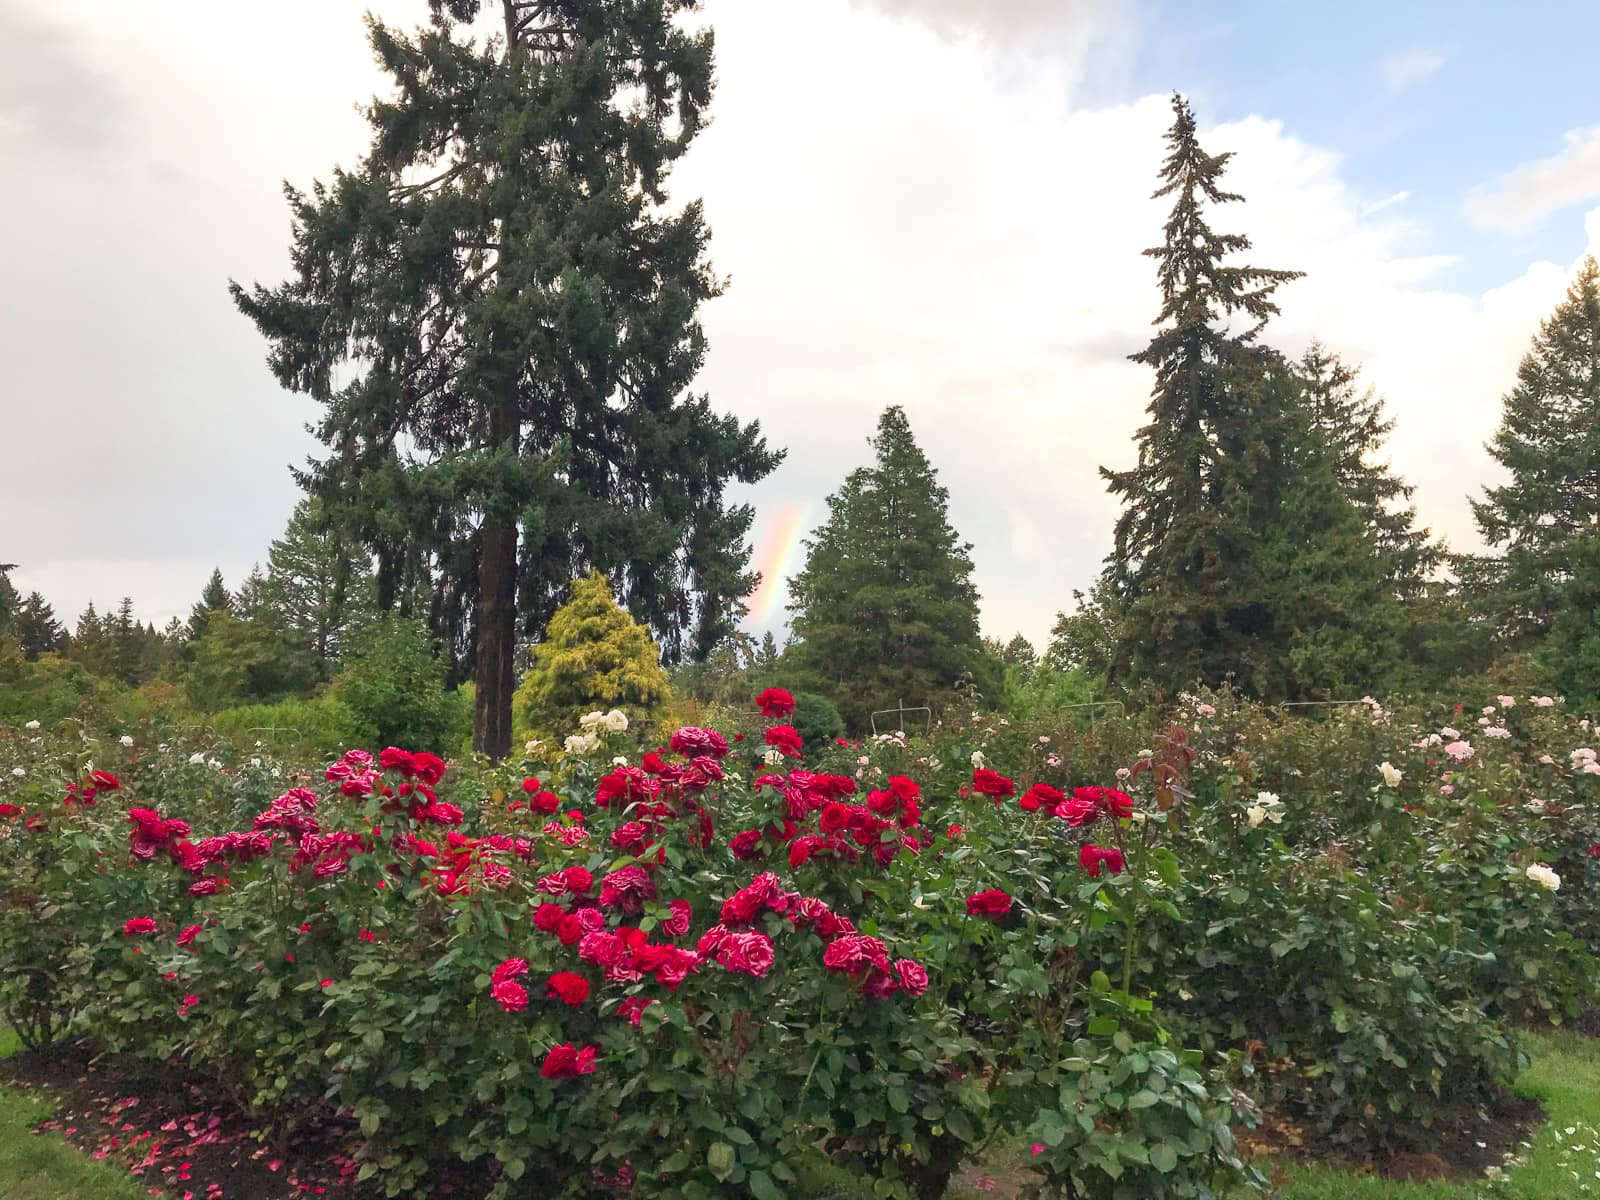 A rose garden with many red and deep pink roses. Big pine trees are visible in the background, with a small sliver of a rainbow appearing in the clouds between the trees